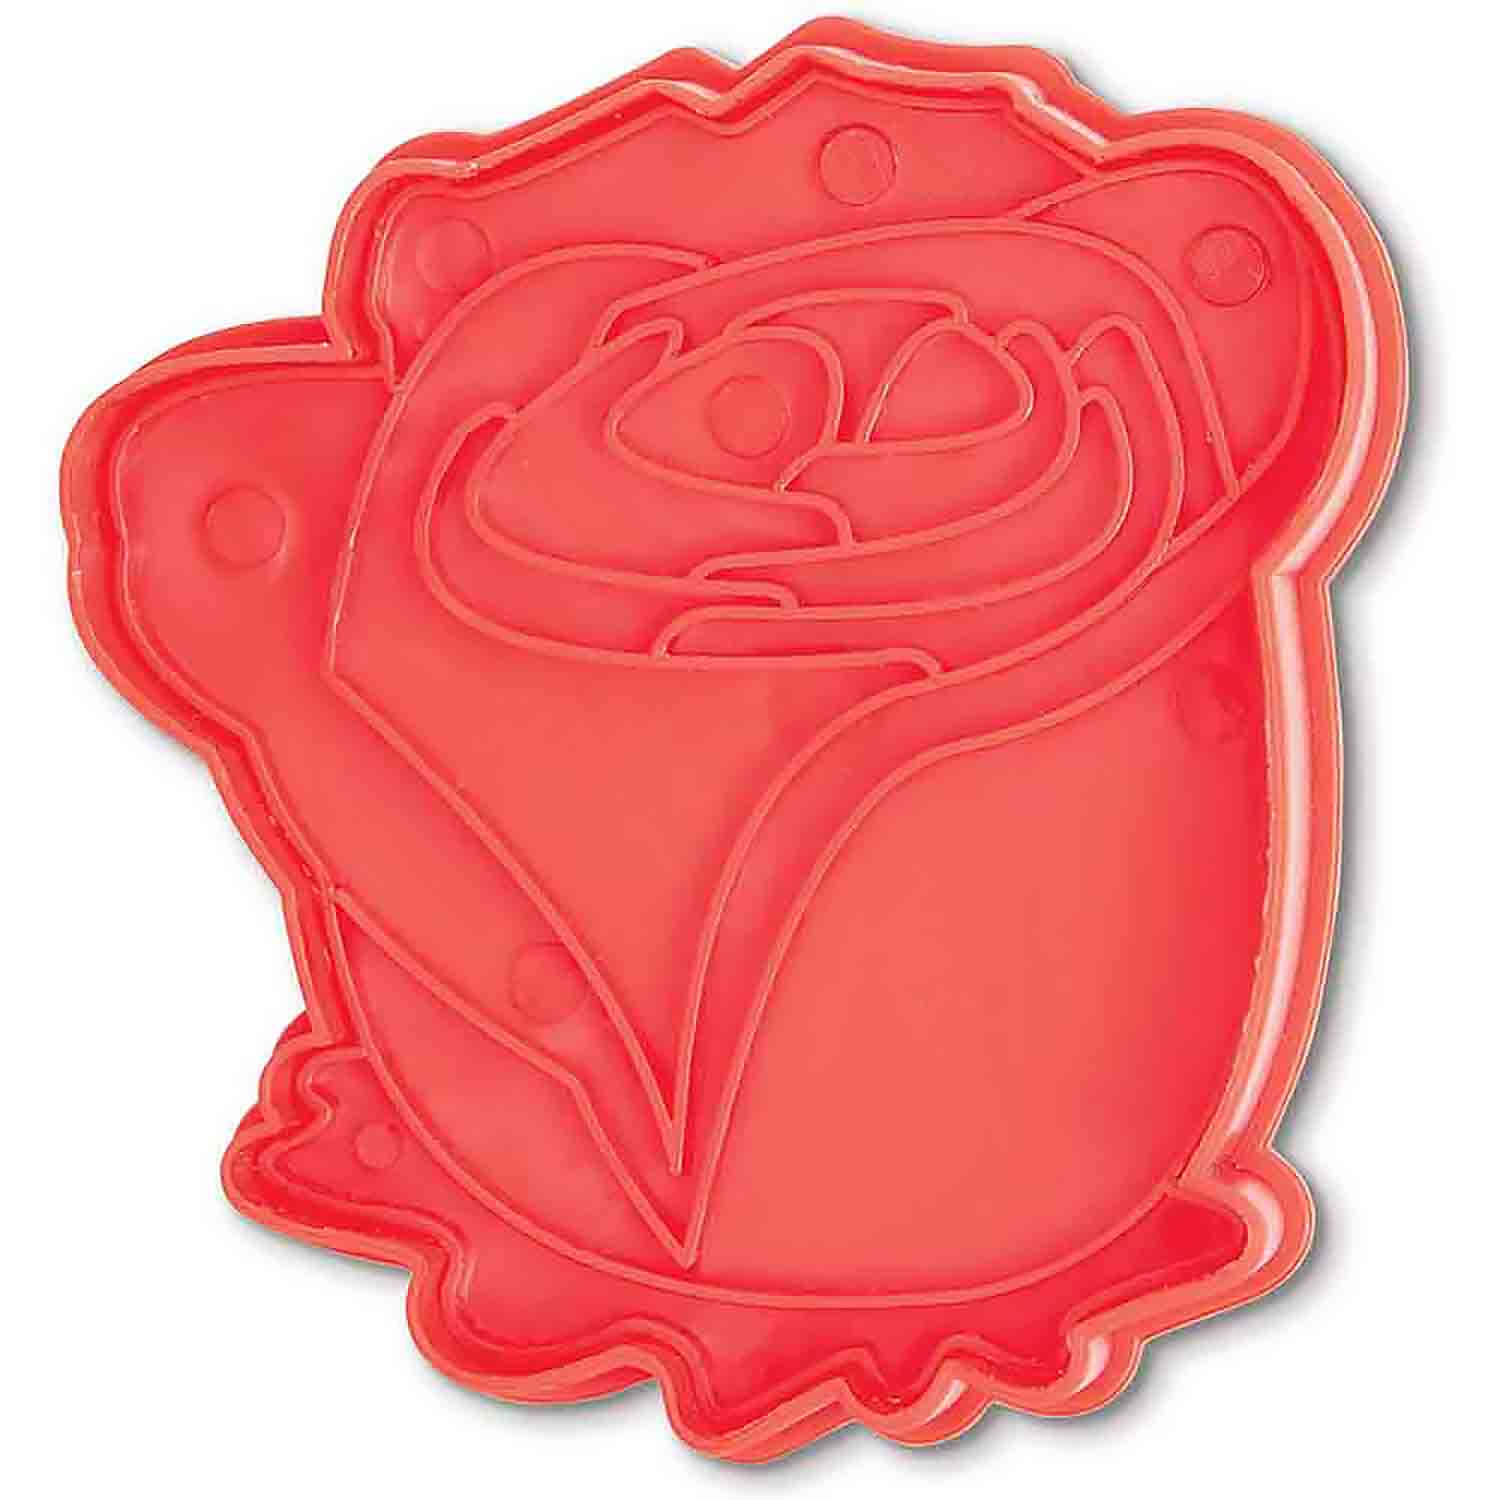 Rose Cookie Cutter Stamp